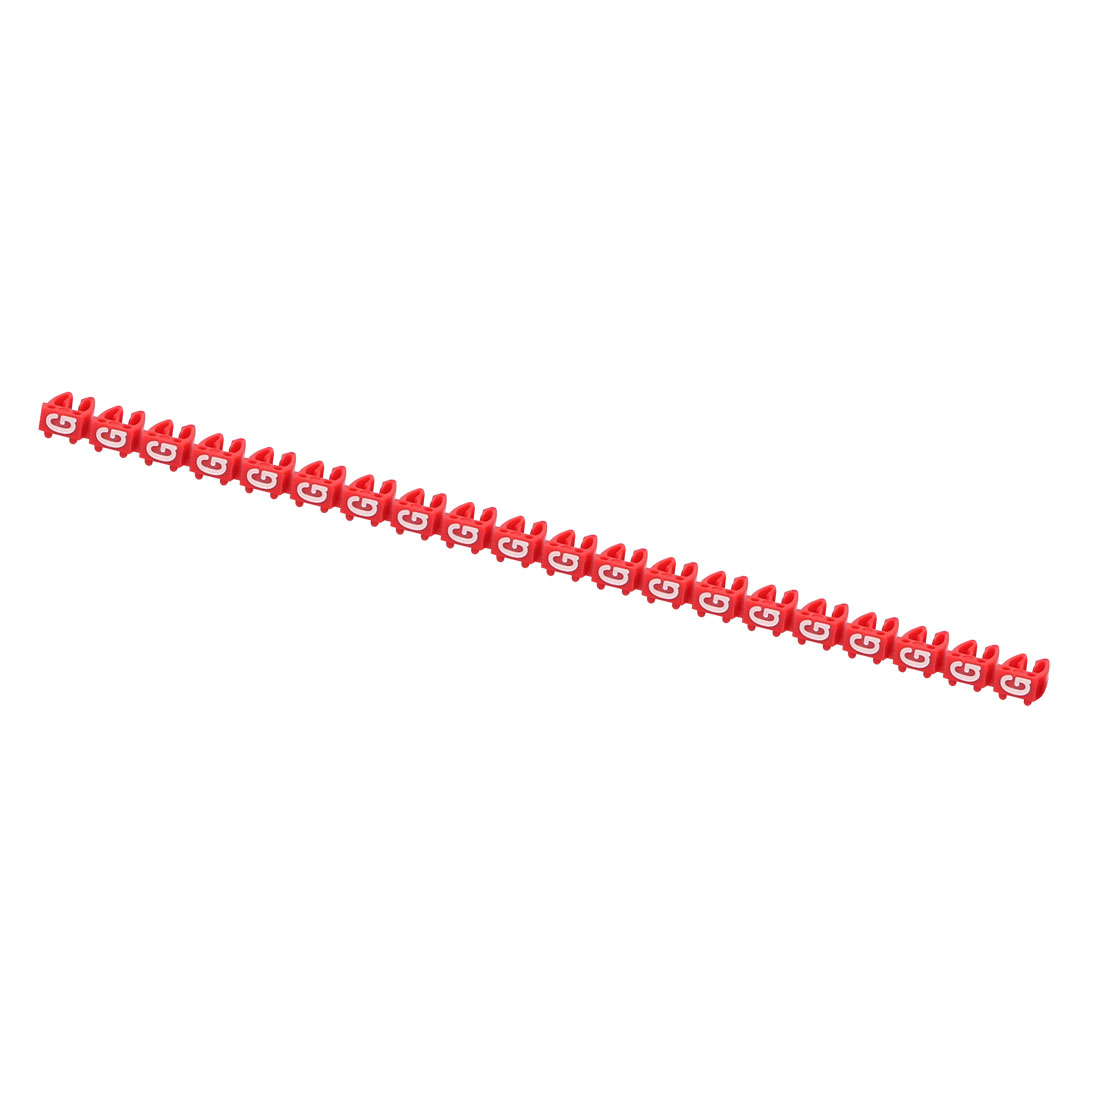 20Pcs Letters G Network Cable Labels Markers Red for 4.0-6.0mm Dia Cable